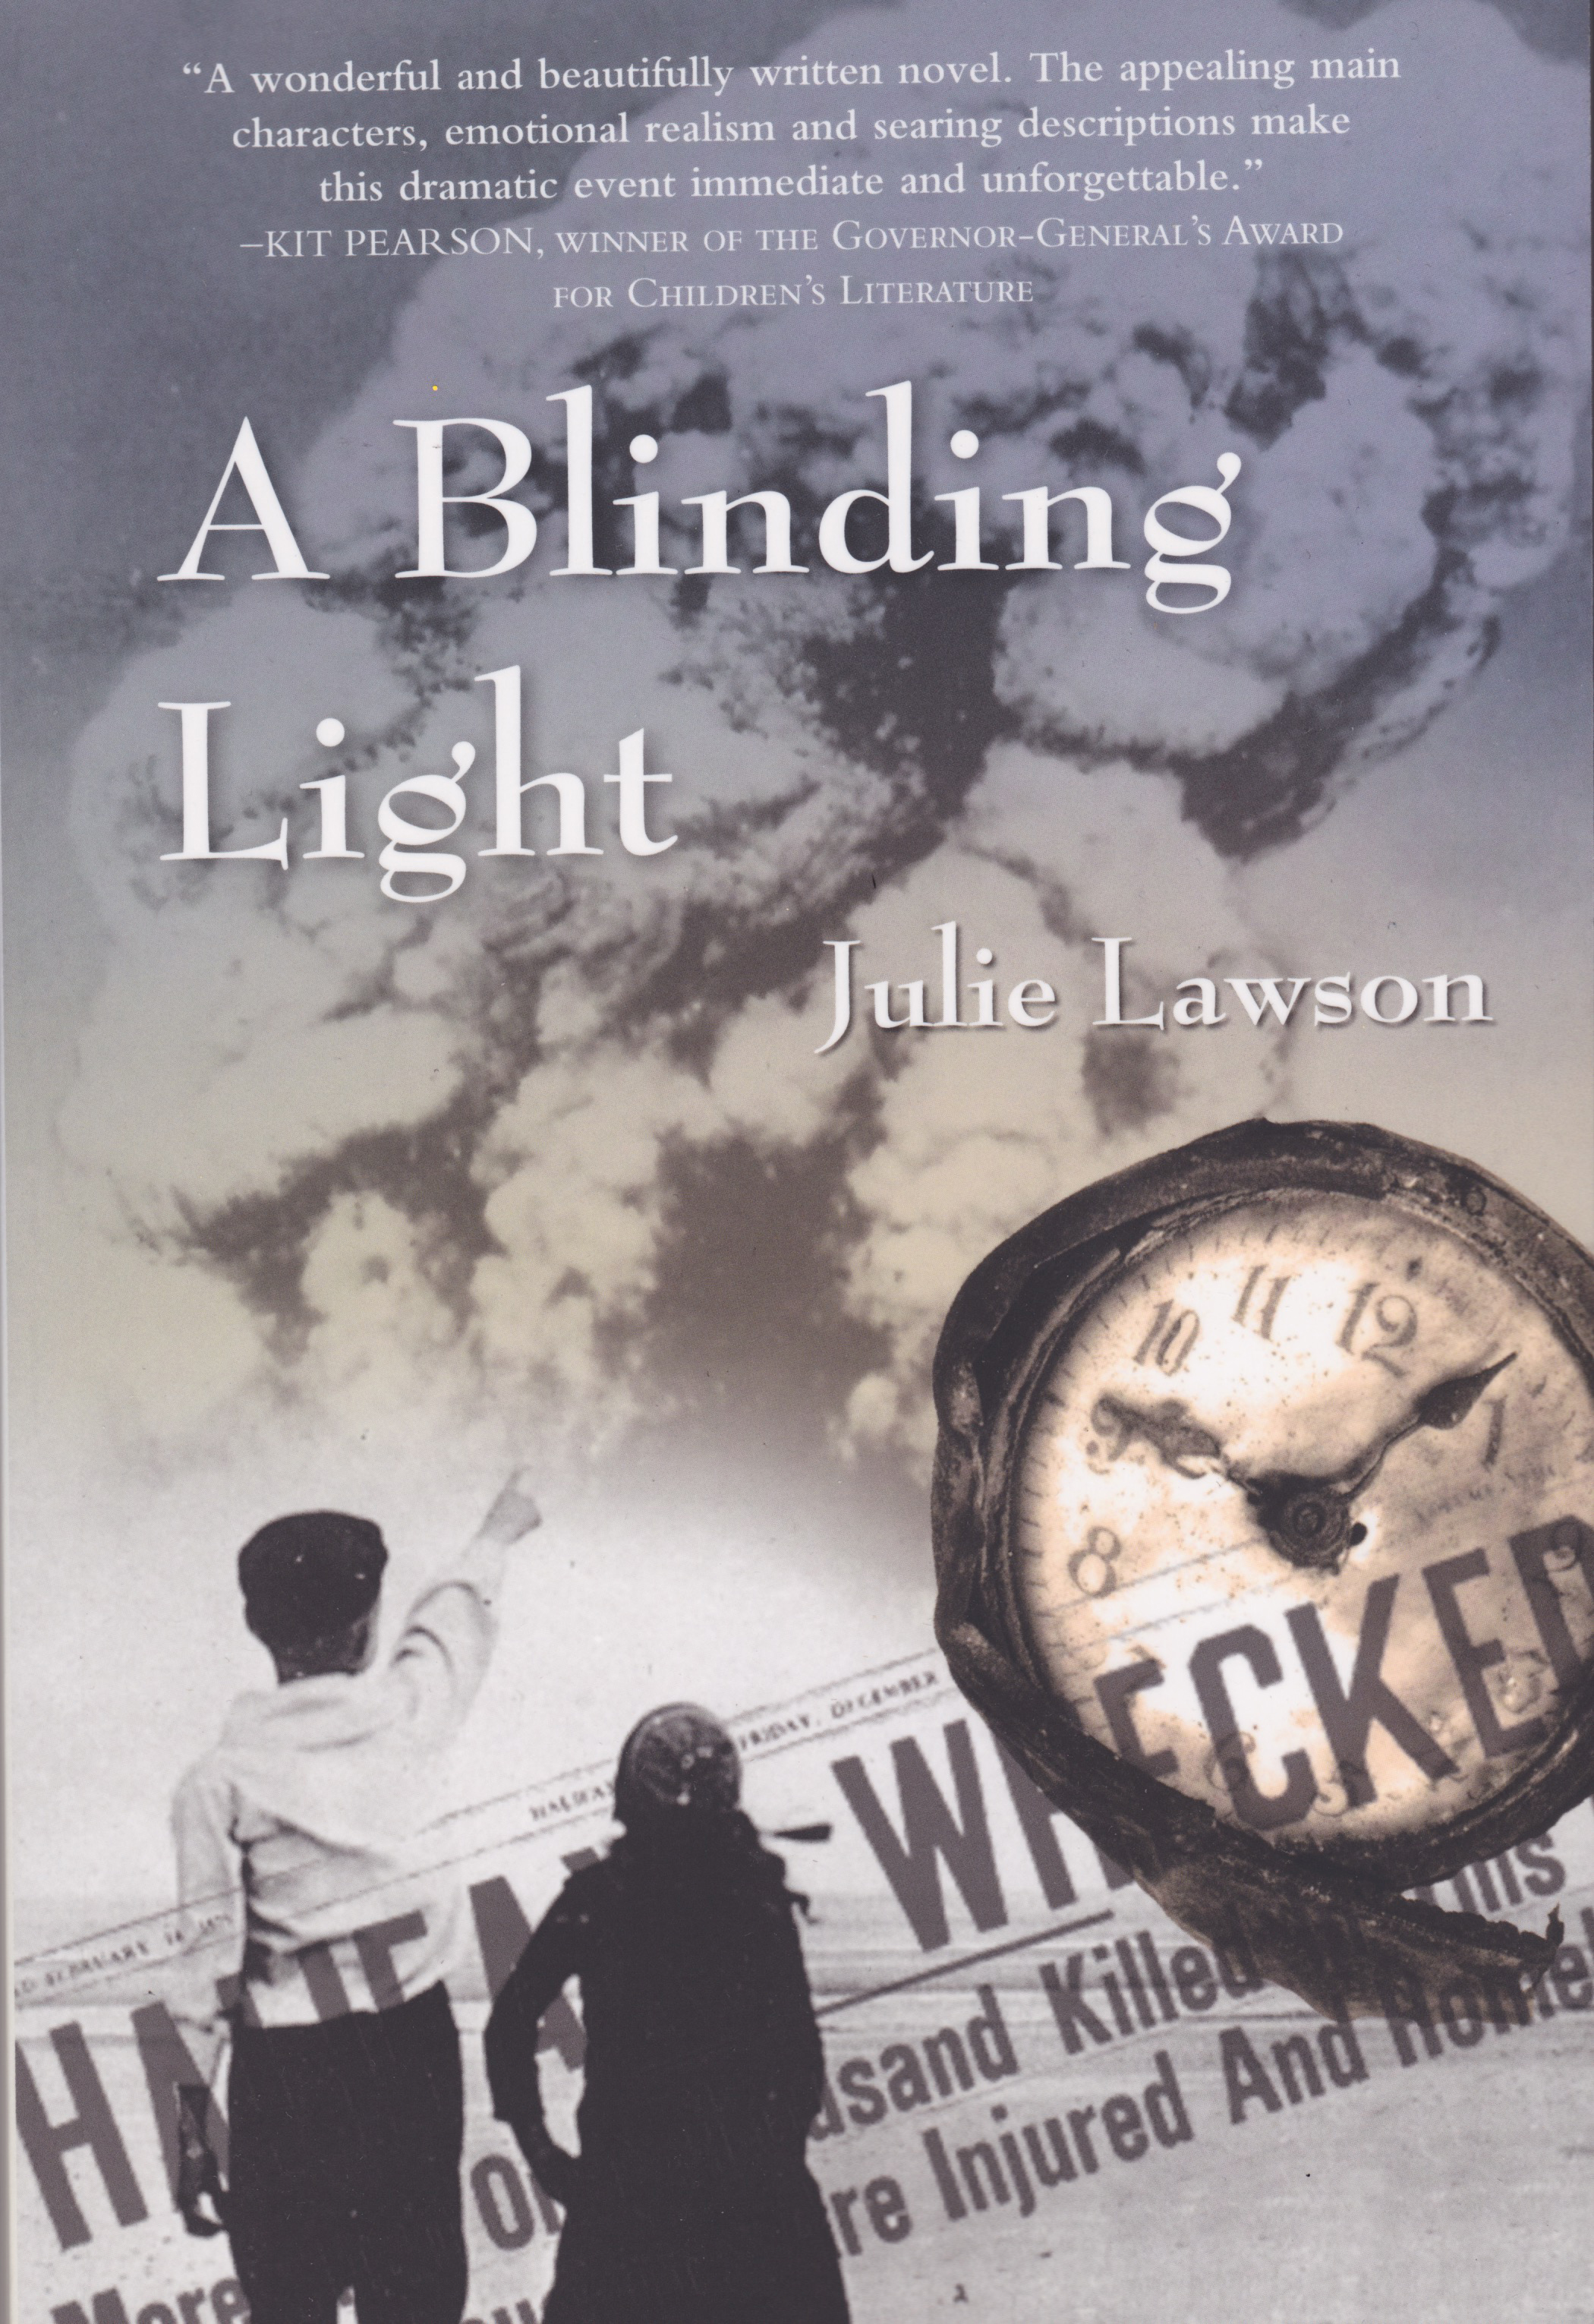 Cover of A Blinding Light courtesy of Nimbus Publishing. The book is by James Bay resident Julie Lawson, with the cover design by Sari Naworynski   .